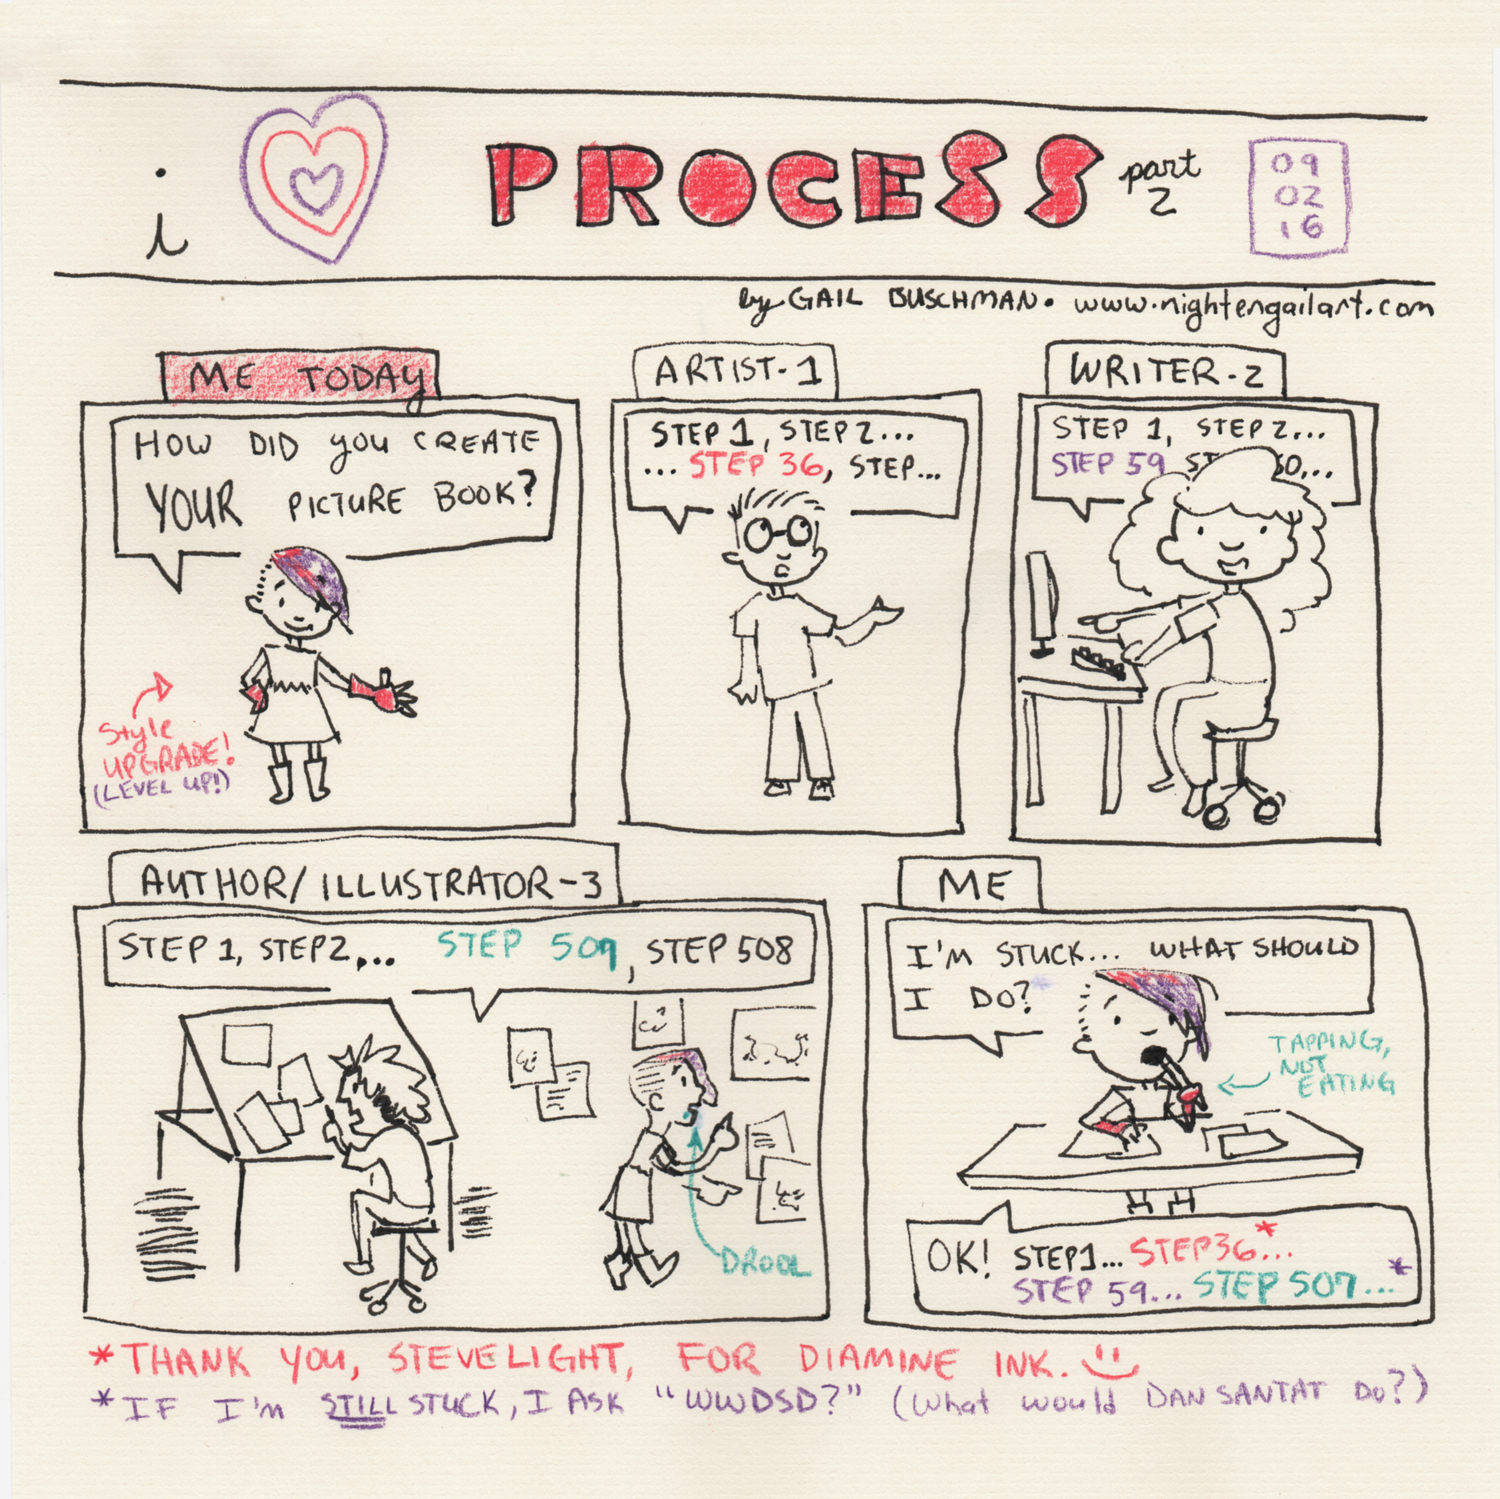 i heart process part 2